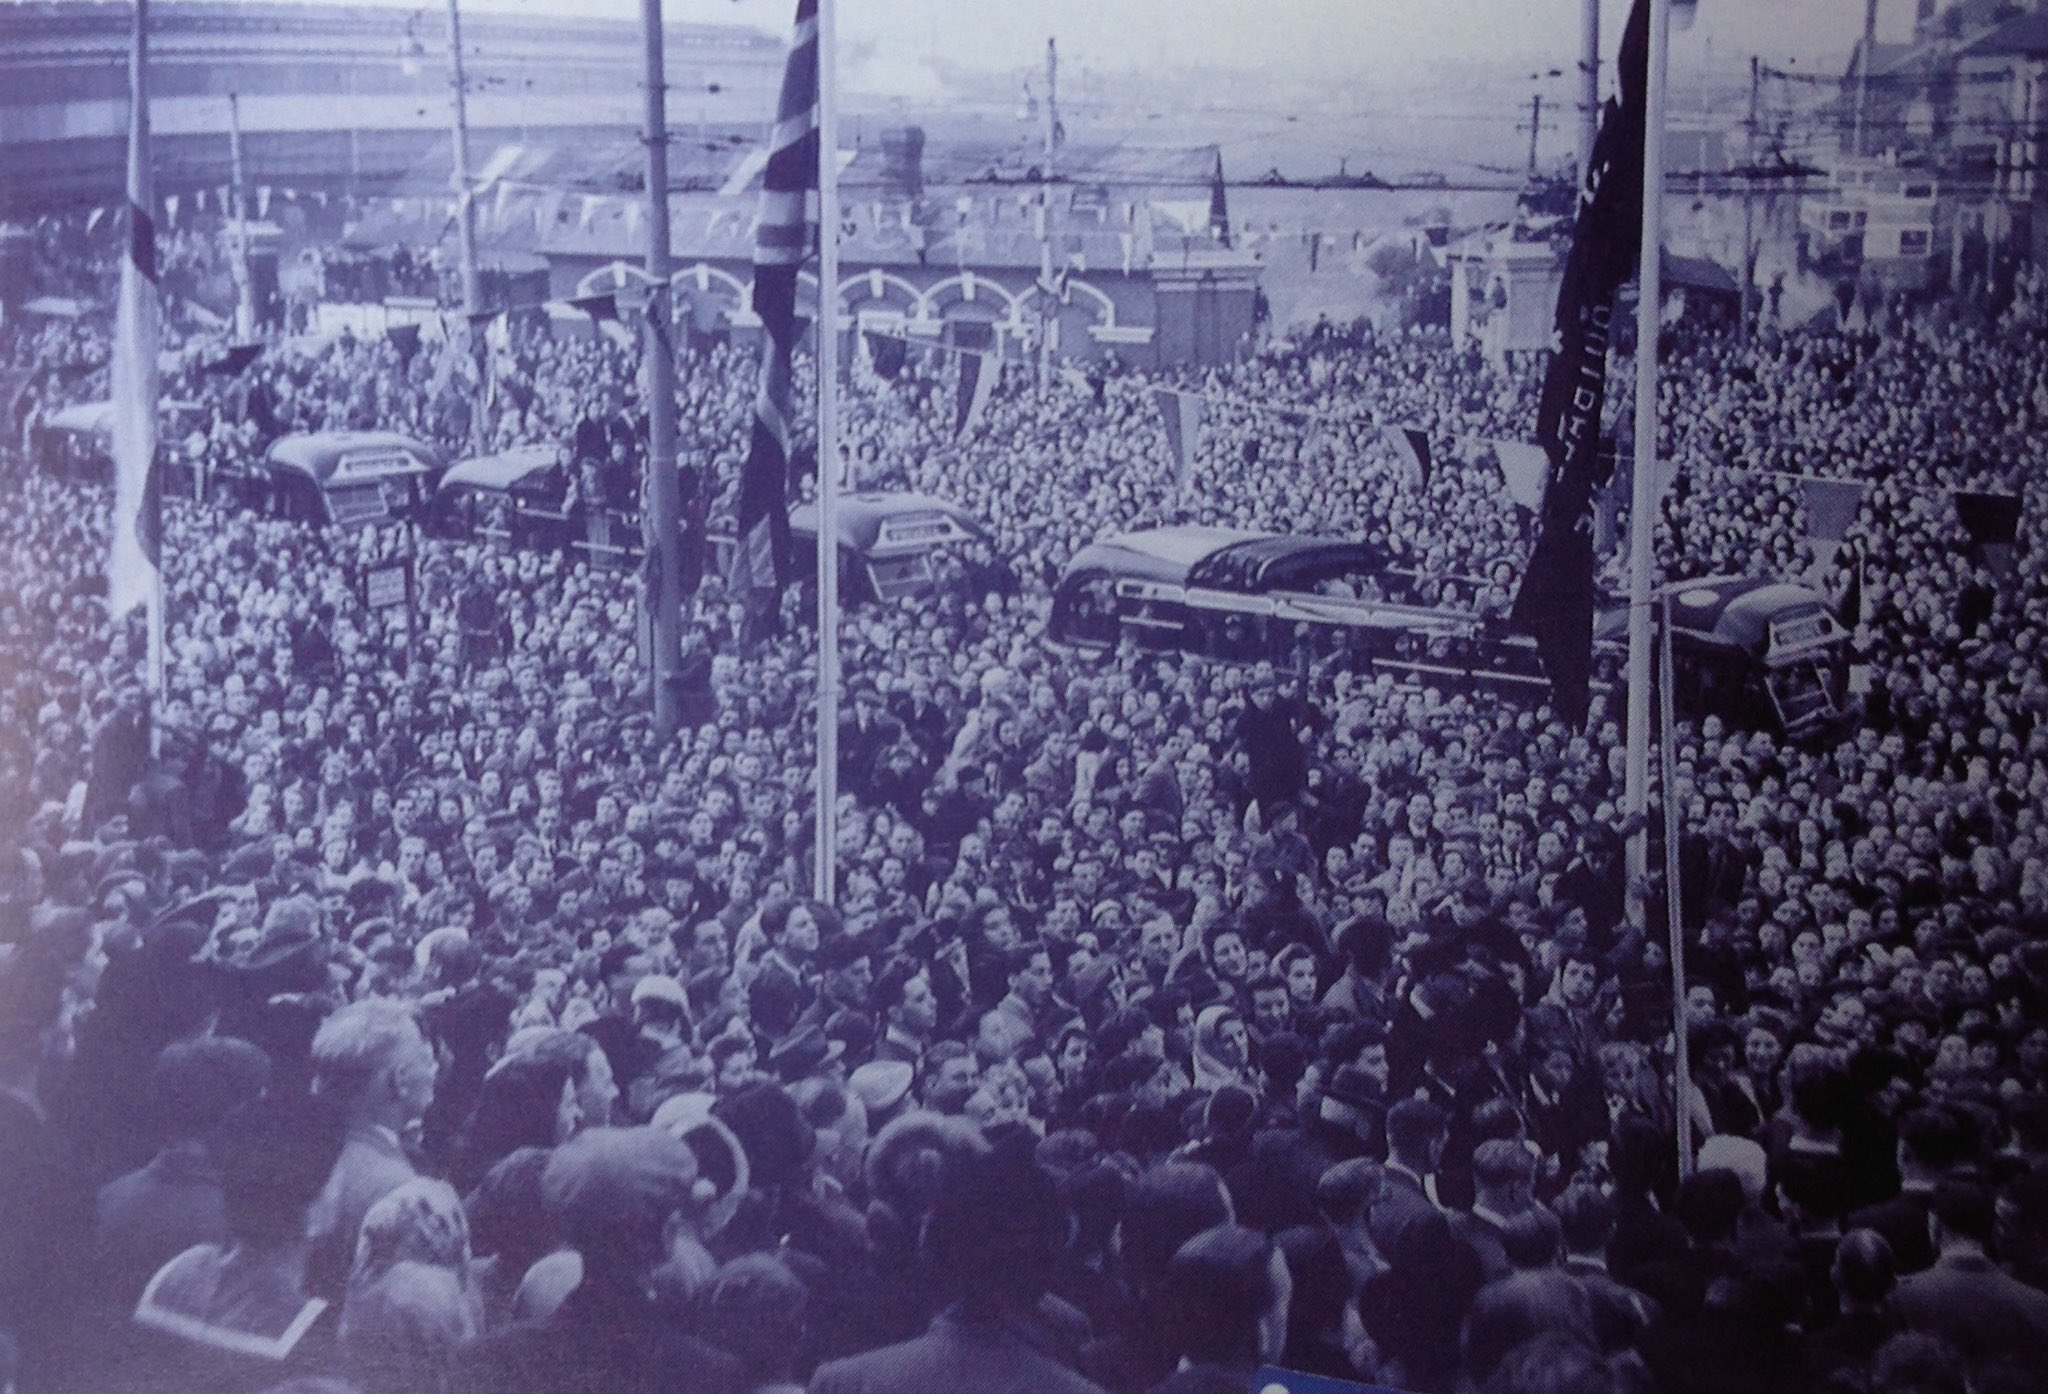 Thousands of fans greet the #Pompey team as they arrive in Guildhall Square with the 1948/49 League Championship trophy. #PompeyHistory https://t.co/r0GepB38Id